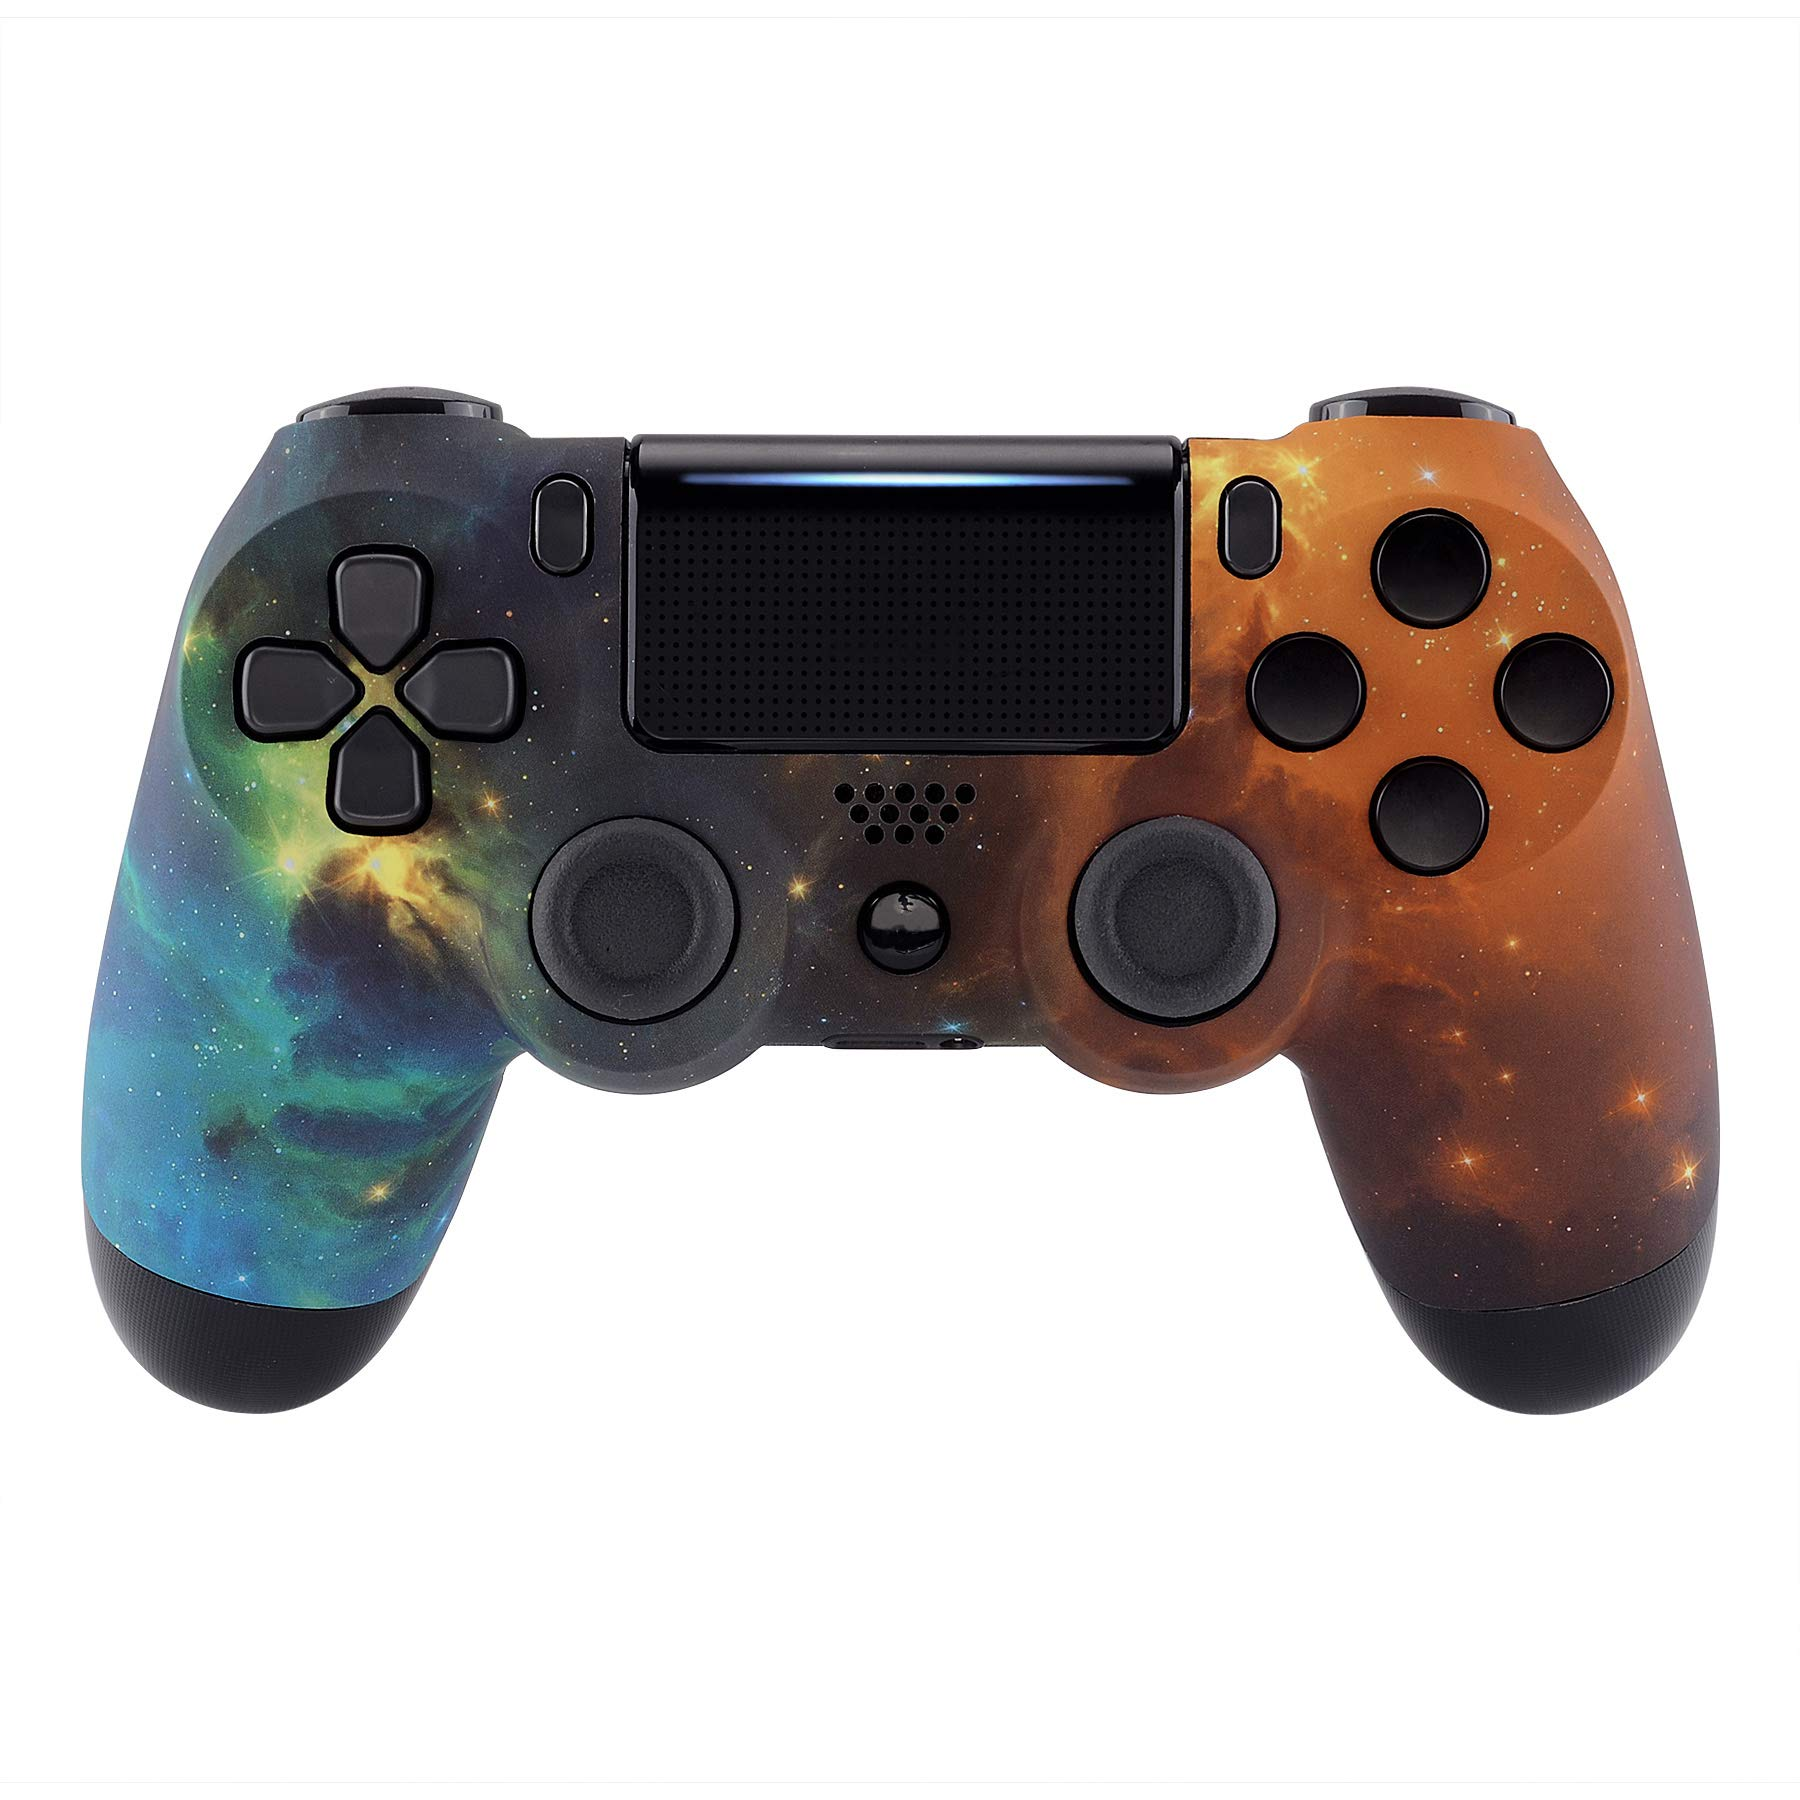 eXtremeRate Orange Star Universe Front Housing Shell Case, Soft Touch Faceplate Cover Replacement Kit for Playstation 4 PS4 Slim PS4 Pro Controller CUH-ZCT2 JDM-040/050/055 - Controller NOT Included